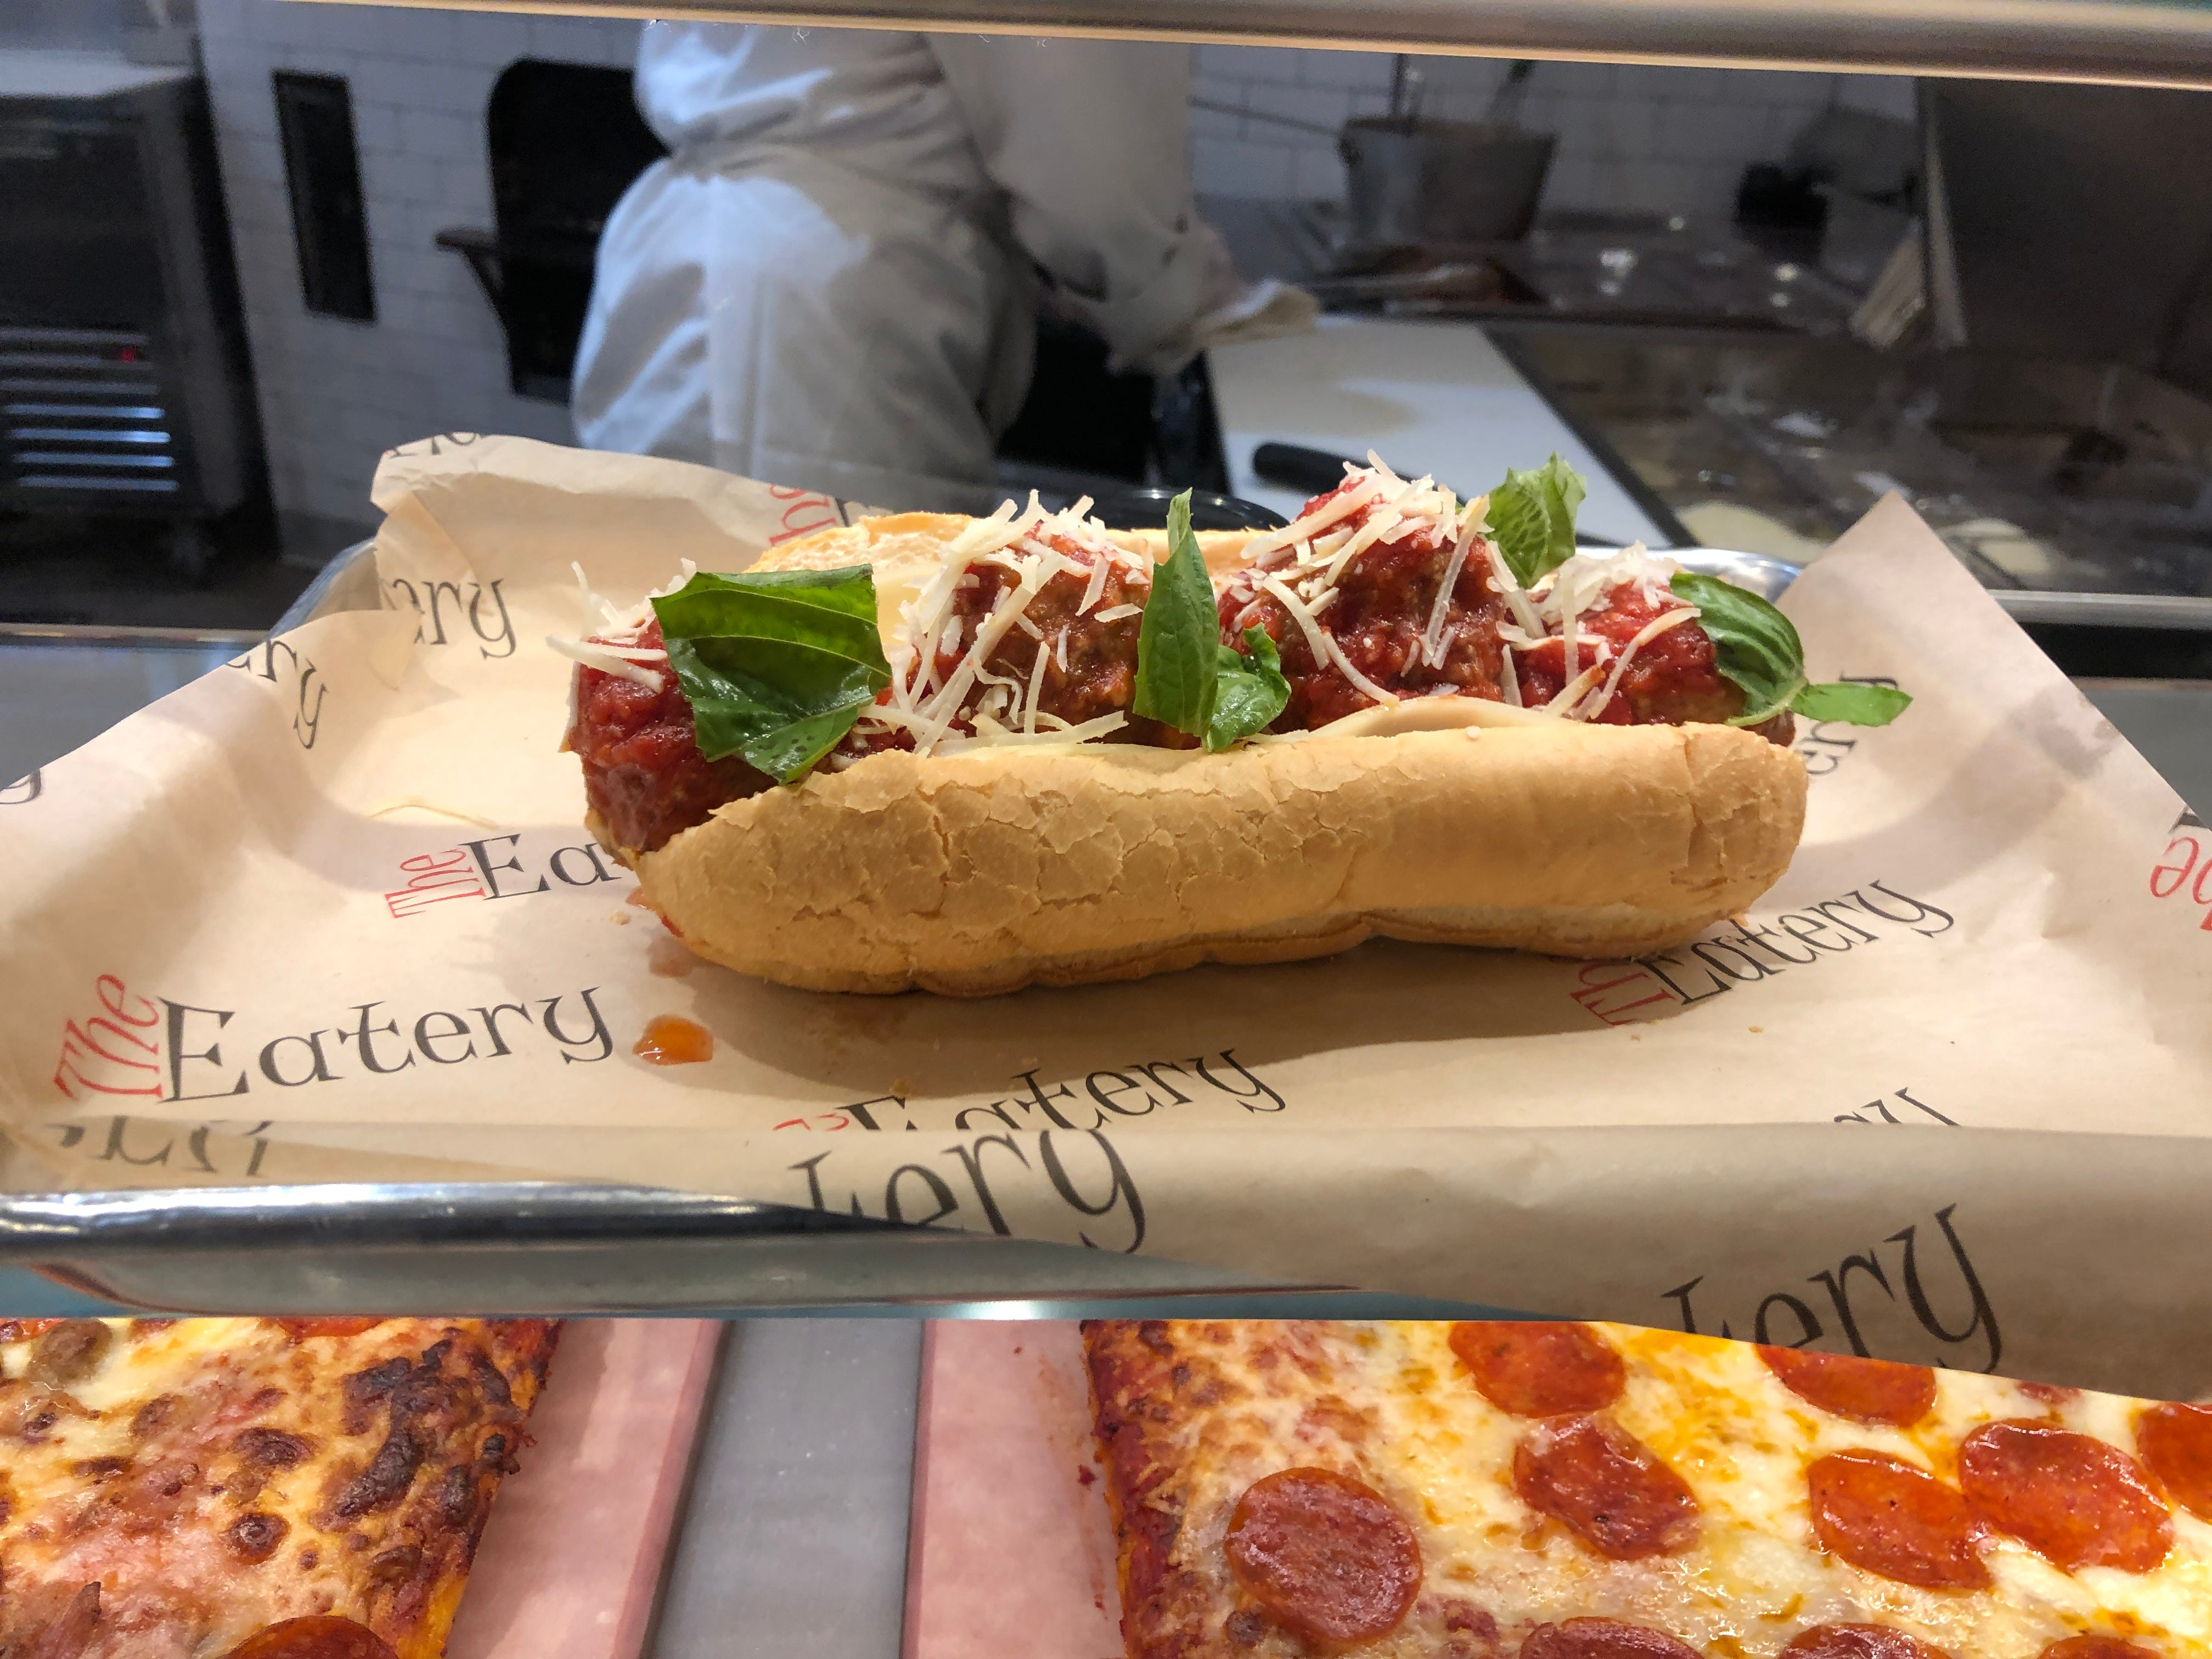 A delicious meatball sandwich at Mercato, part of The Eatery inside Hollywood Casino.